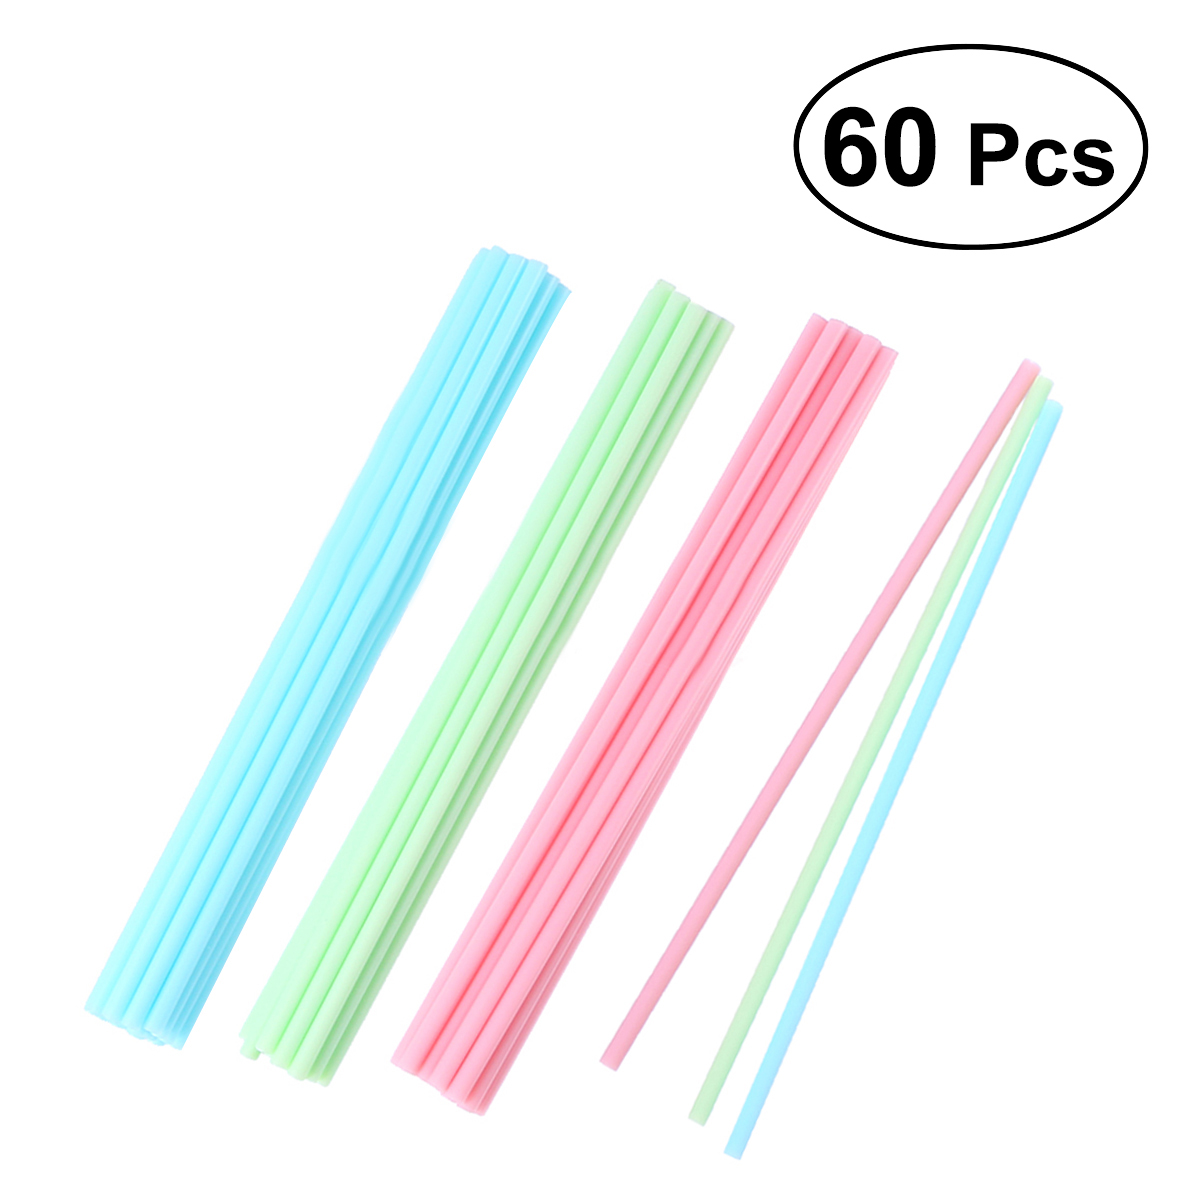 60 Cake Pop Sticks 15 cm Pastel Colors Kitchen Craft Plastic Handles for Cake Colored Lollipop Sticks